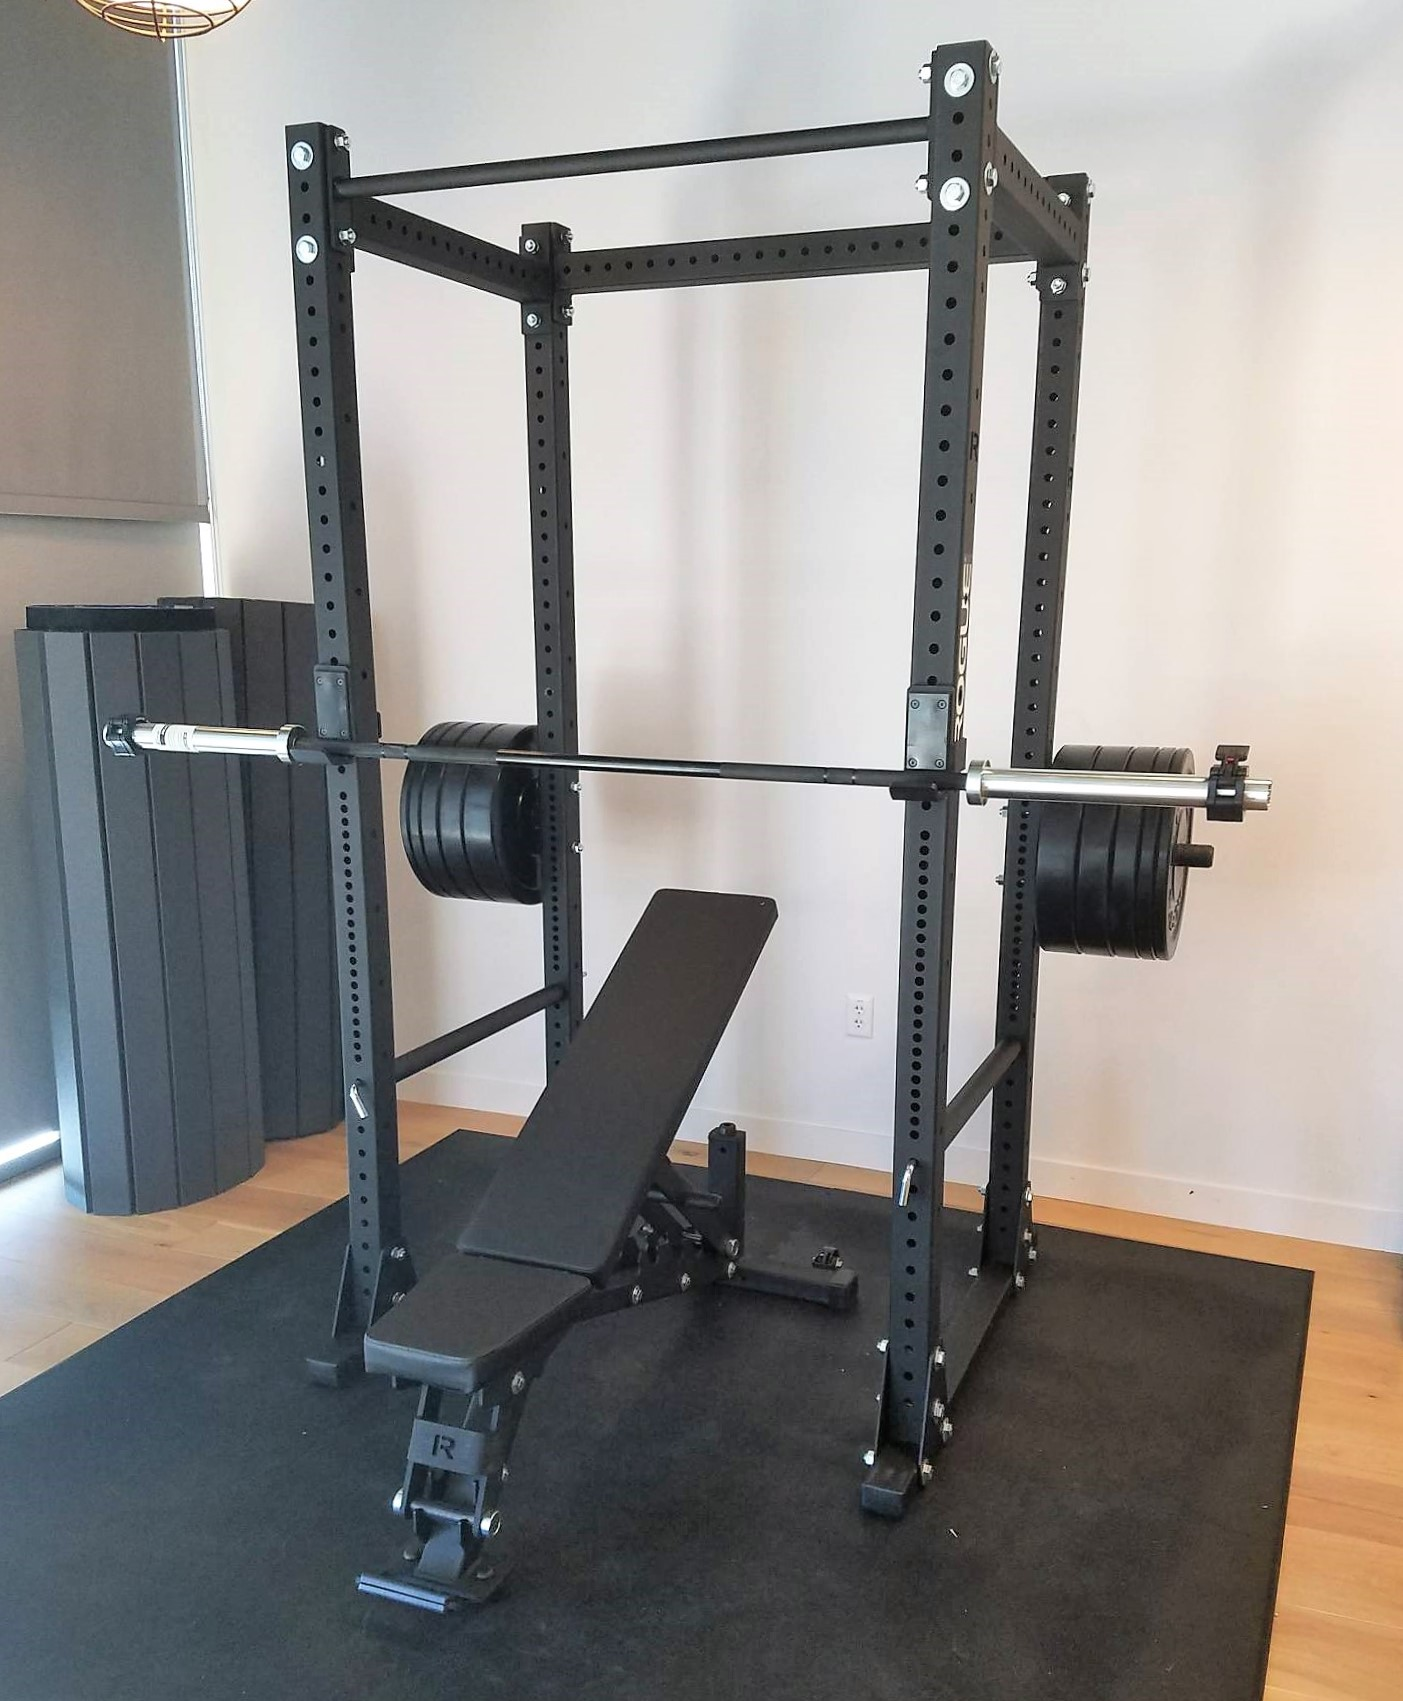 Transmotion Delivery Assembly Installation Relocation Extraction Removal Rogue Fitness San Mateo California RML 390F Flat Foot Monster Lite Rack with Adjustable Bench Ohio Bar Chicago IL Washington California Michigan Indiana Downers Grove IL Local Near me